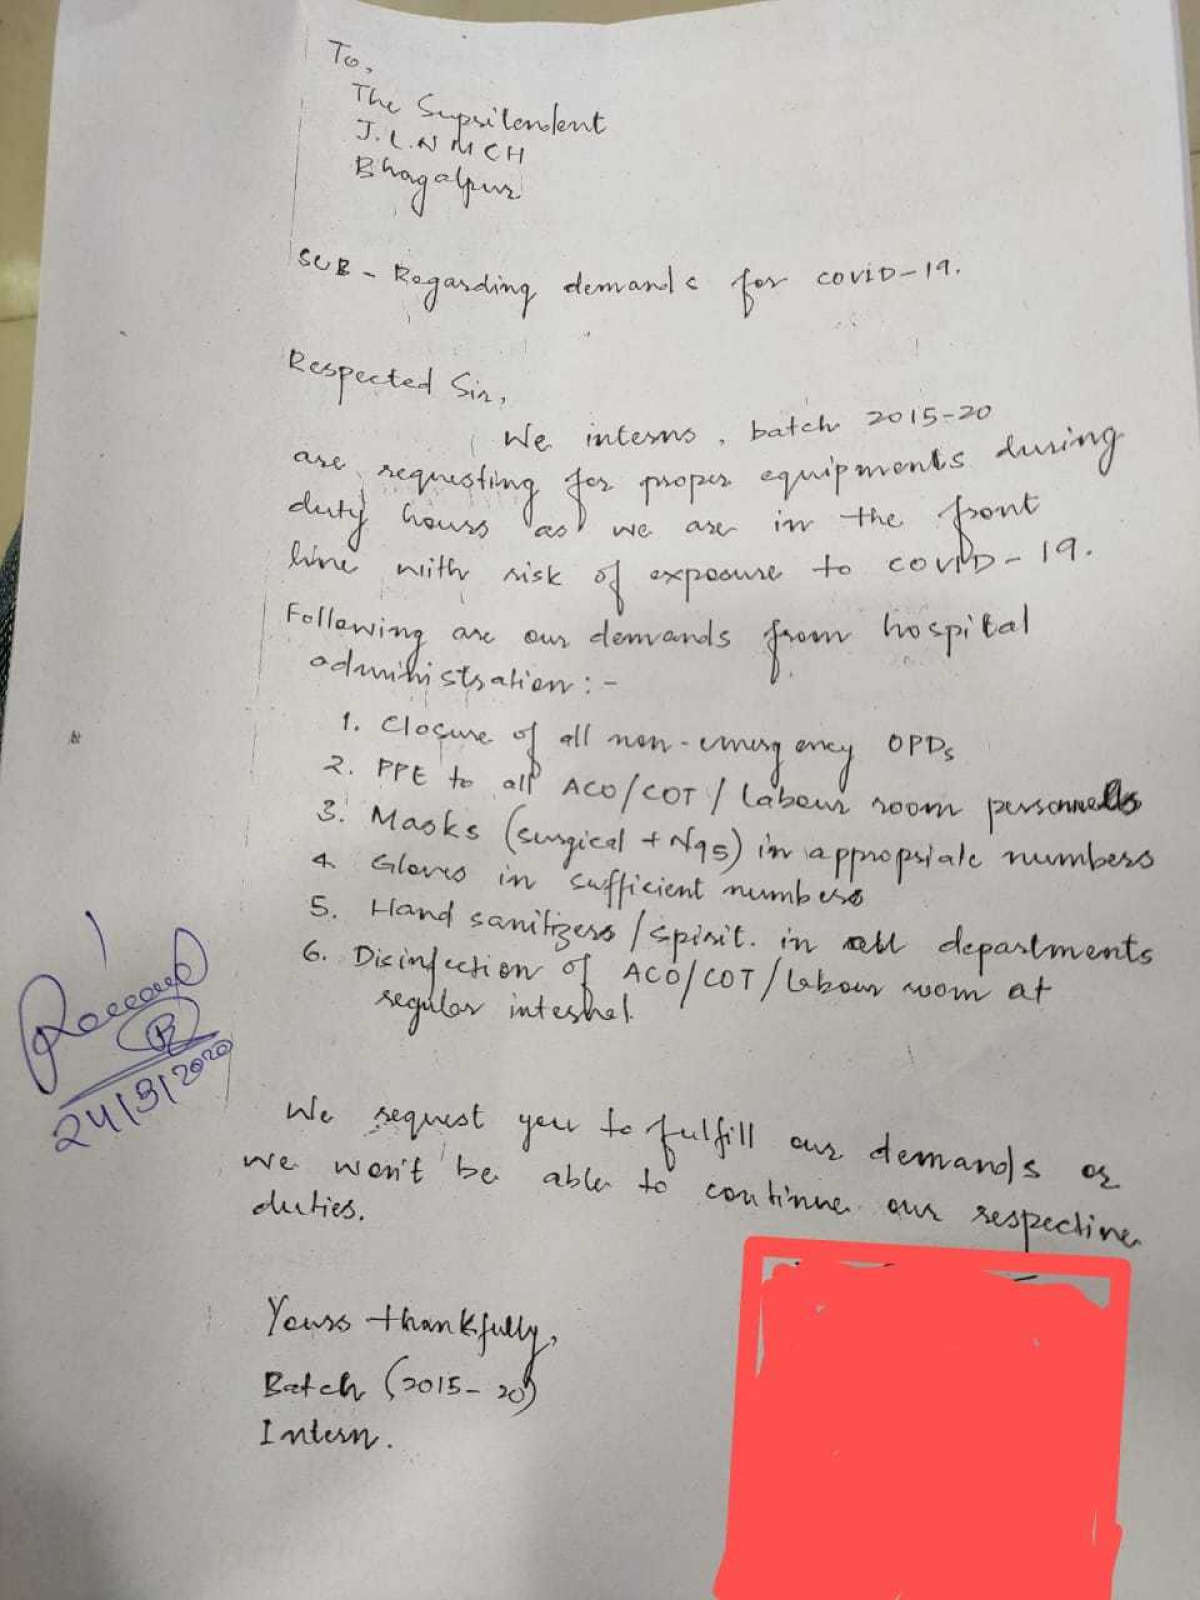 The letter shared by student in Bhangalpur